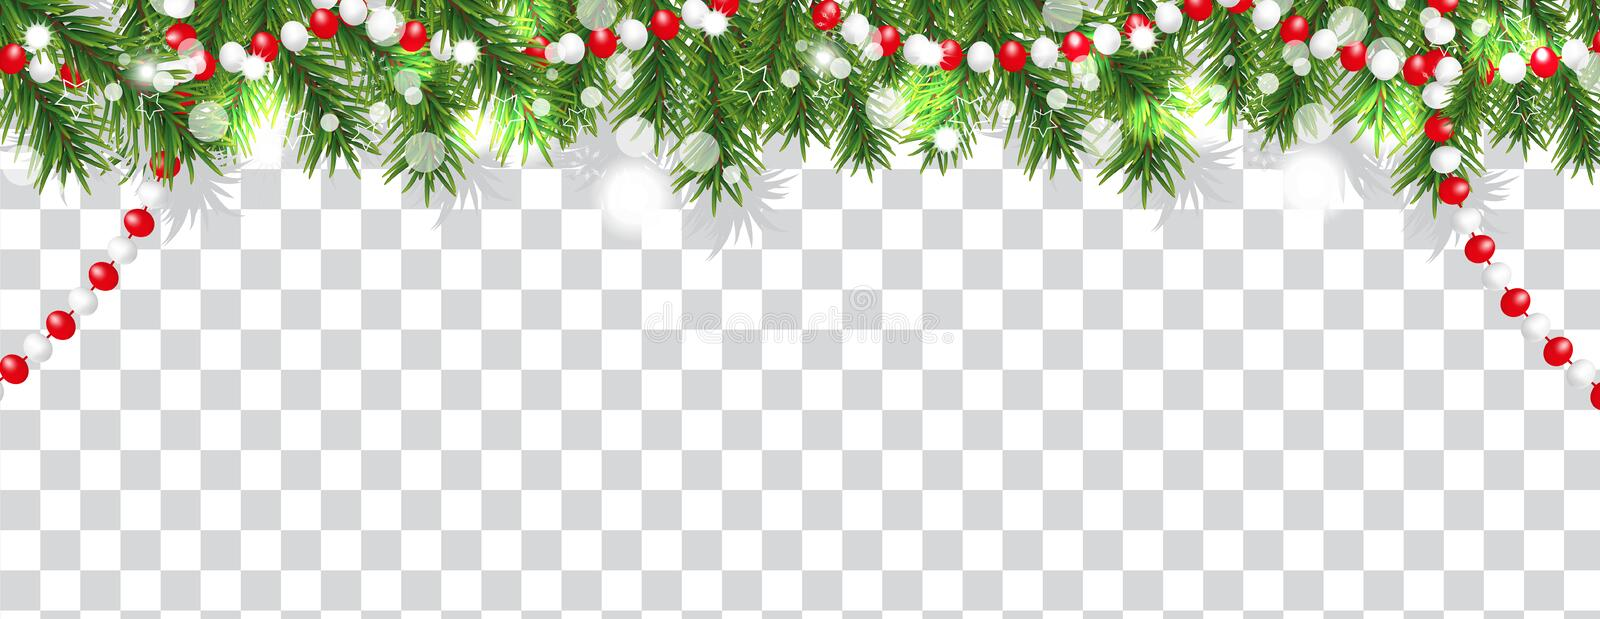 Christmas and happy New Year border of Christmas tree branches and beads on transparent background. Holidays decoration. Vector royalty free illustration